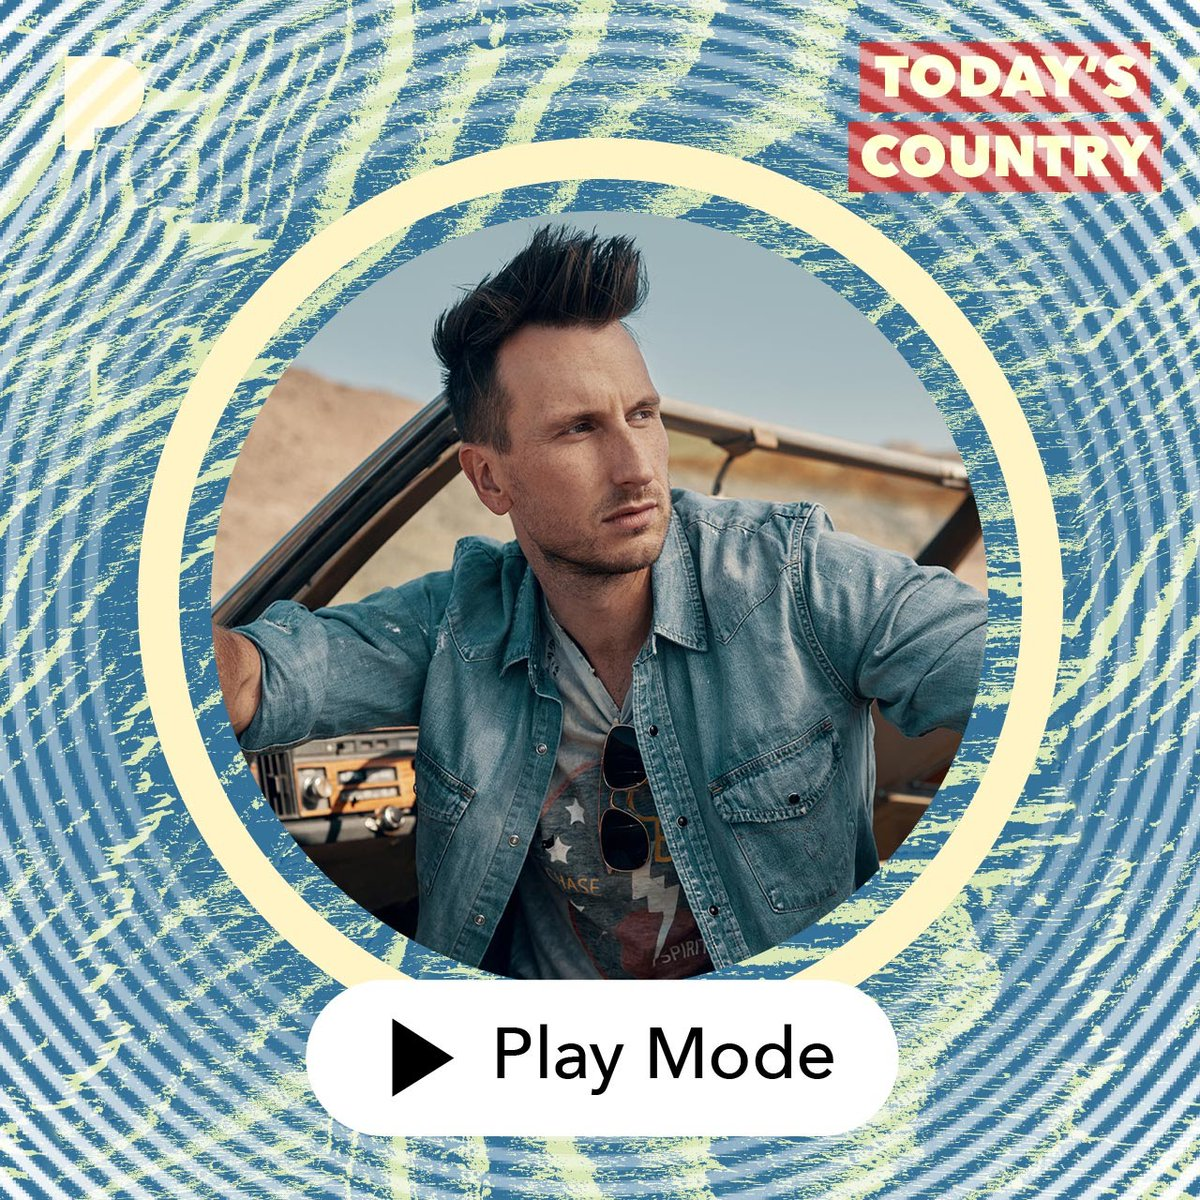 Head over to @pandoramusic and give their #TodaysCountry Playlist a spin to hear #SouthernSymphony 🚨🚨🚨